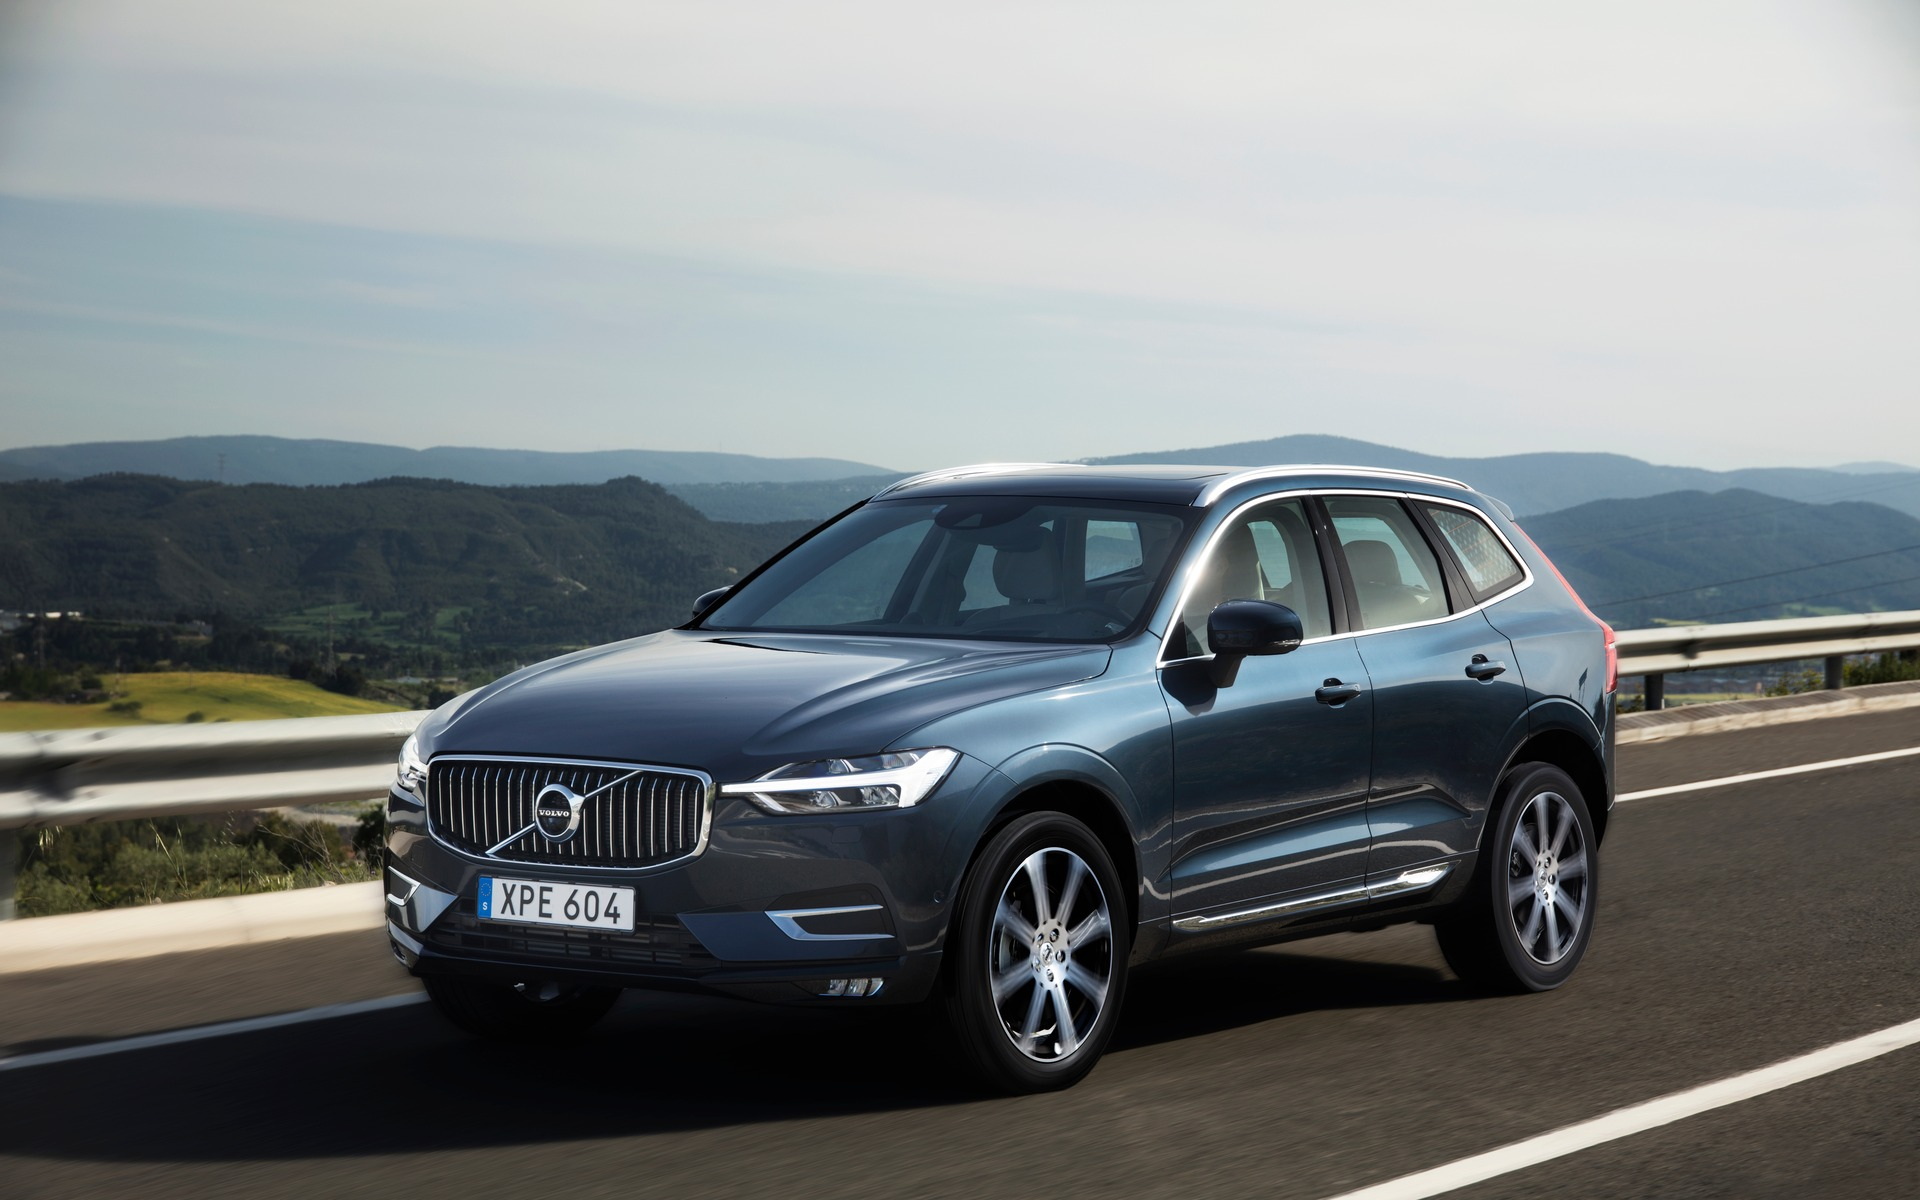 2019 Volvo XC60 Review, Price >> Meet the 2018 Volvo XC60 - The Car Guide